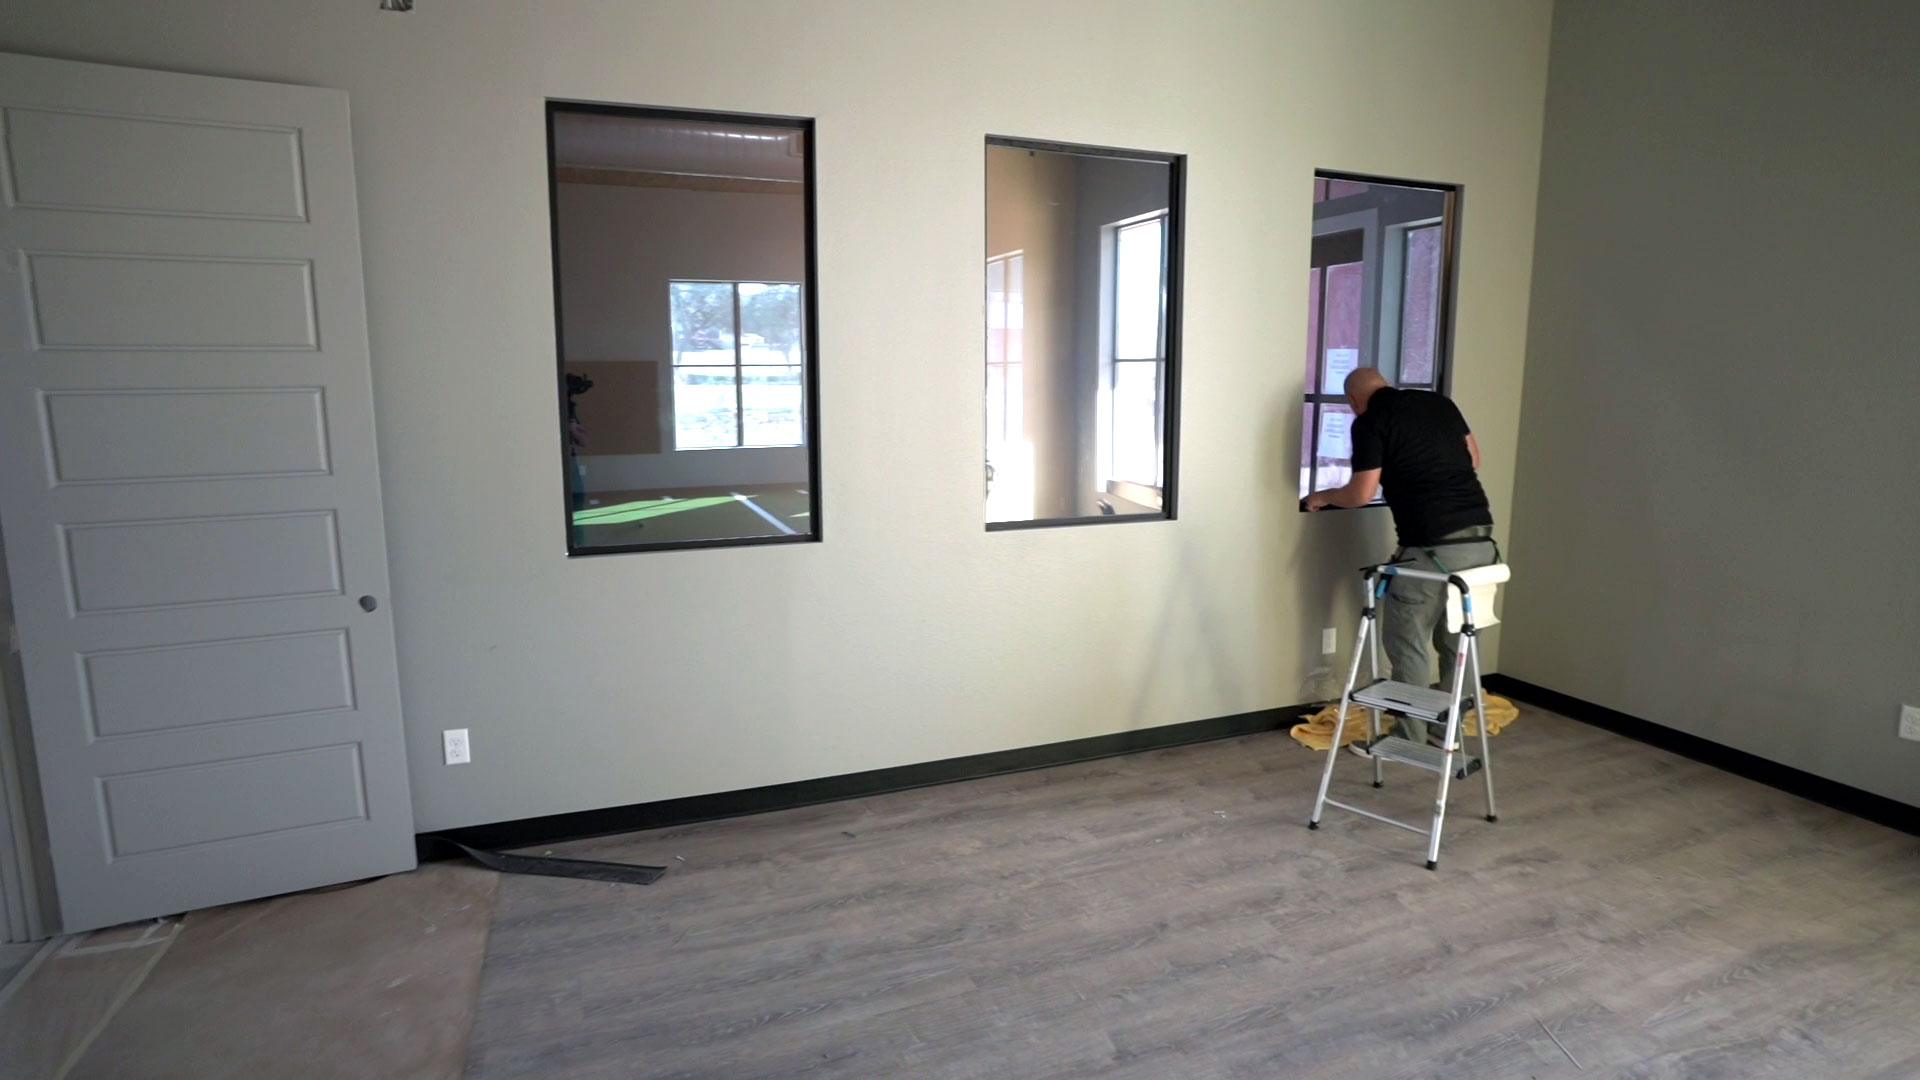 VISION Home & Office Window Film - One Way Window Film - Mirror Tint